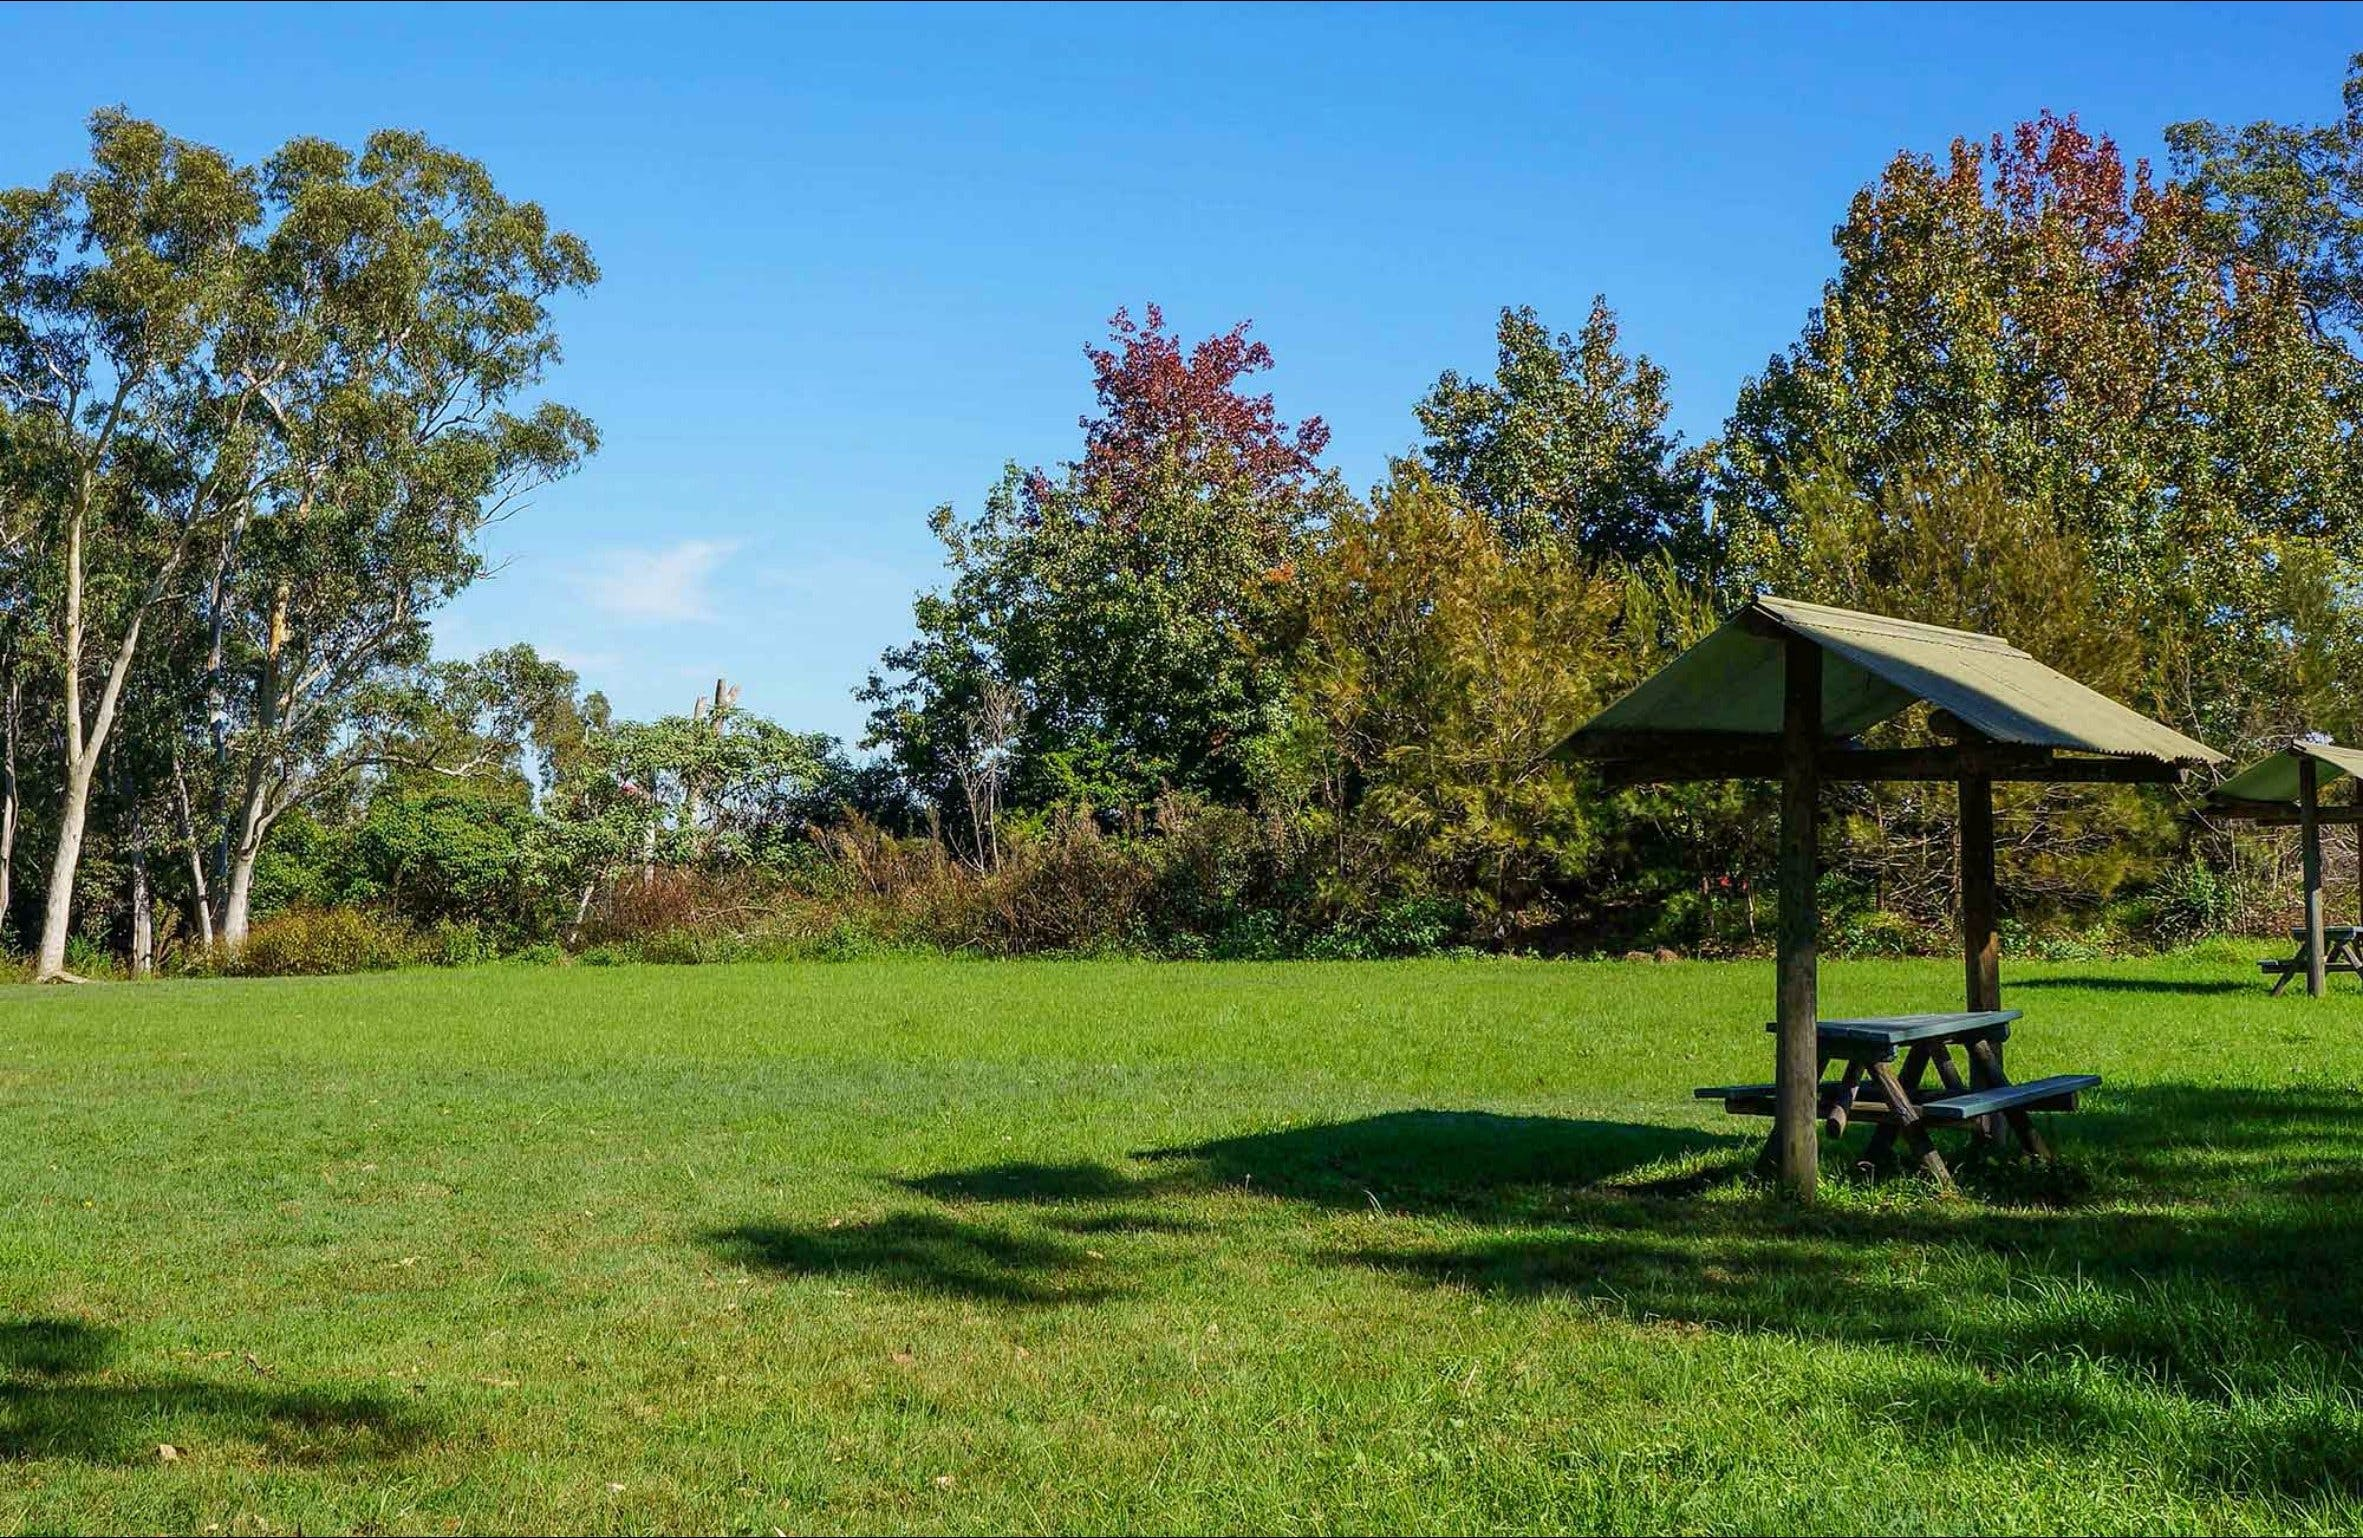 Tunks Hill picnic area